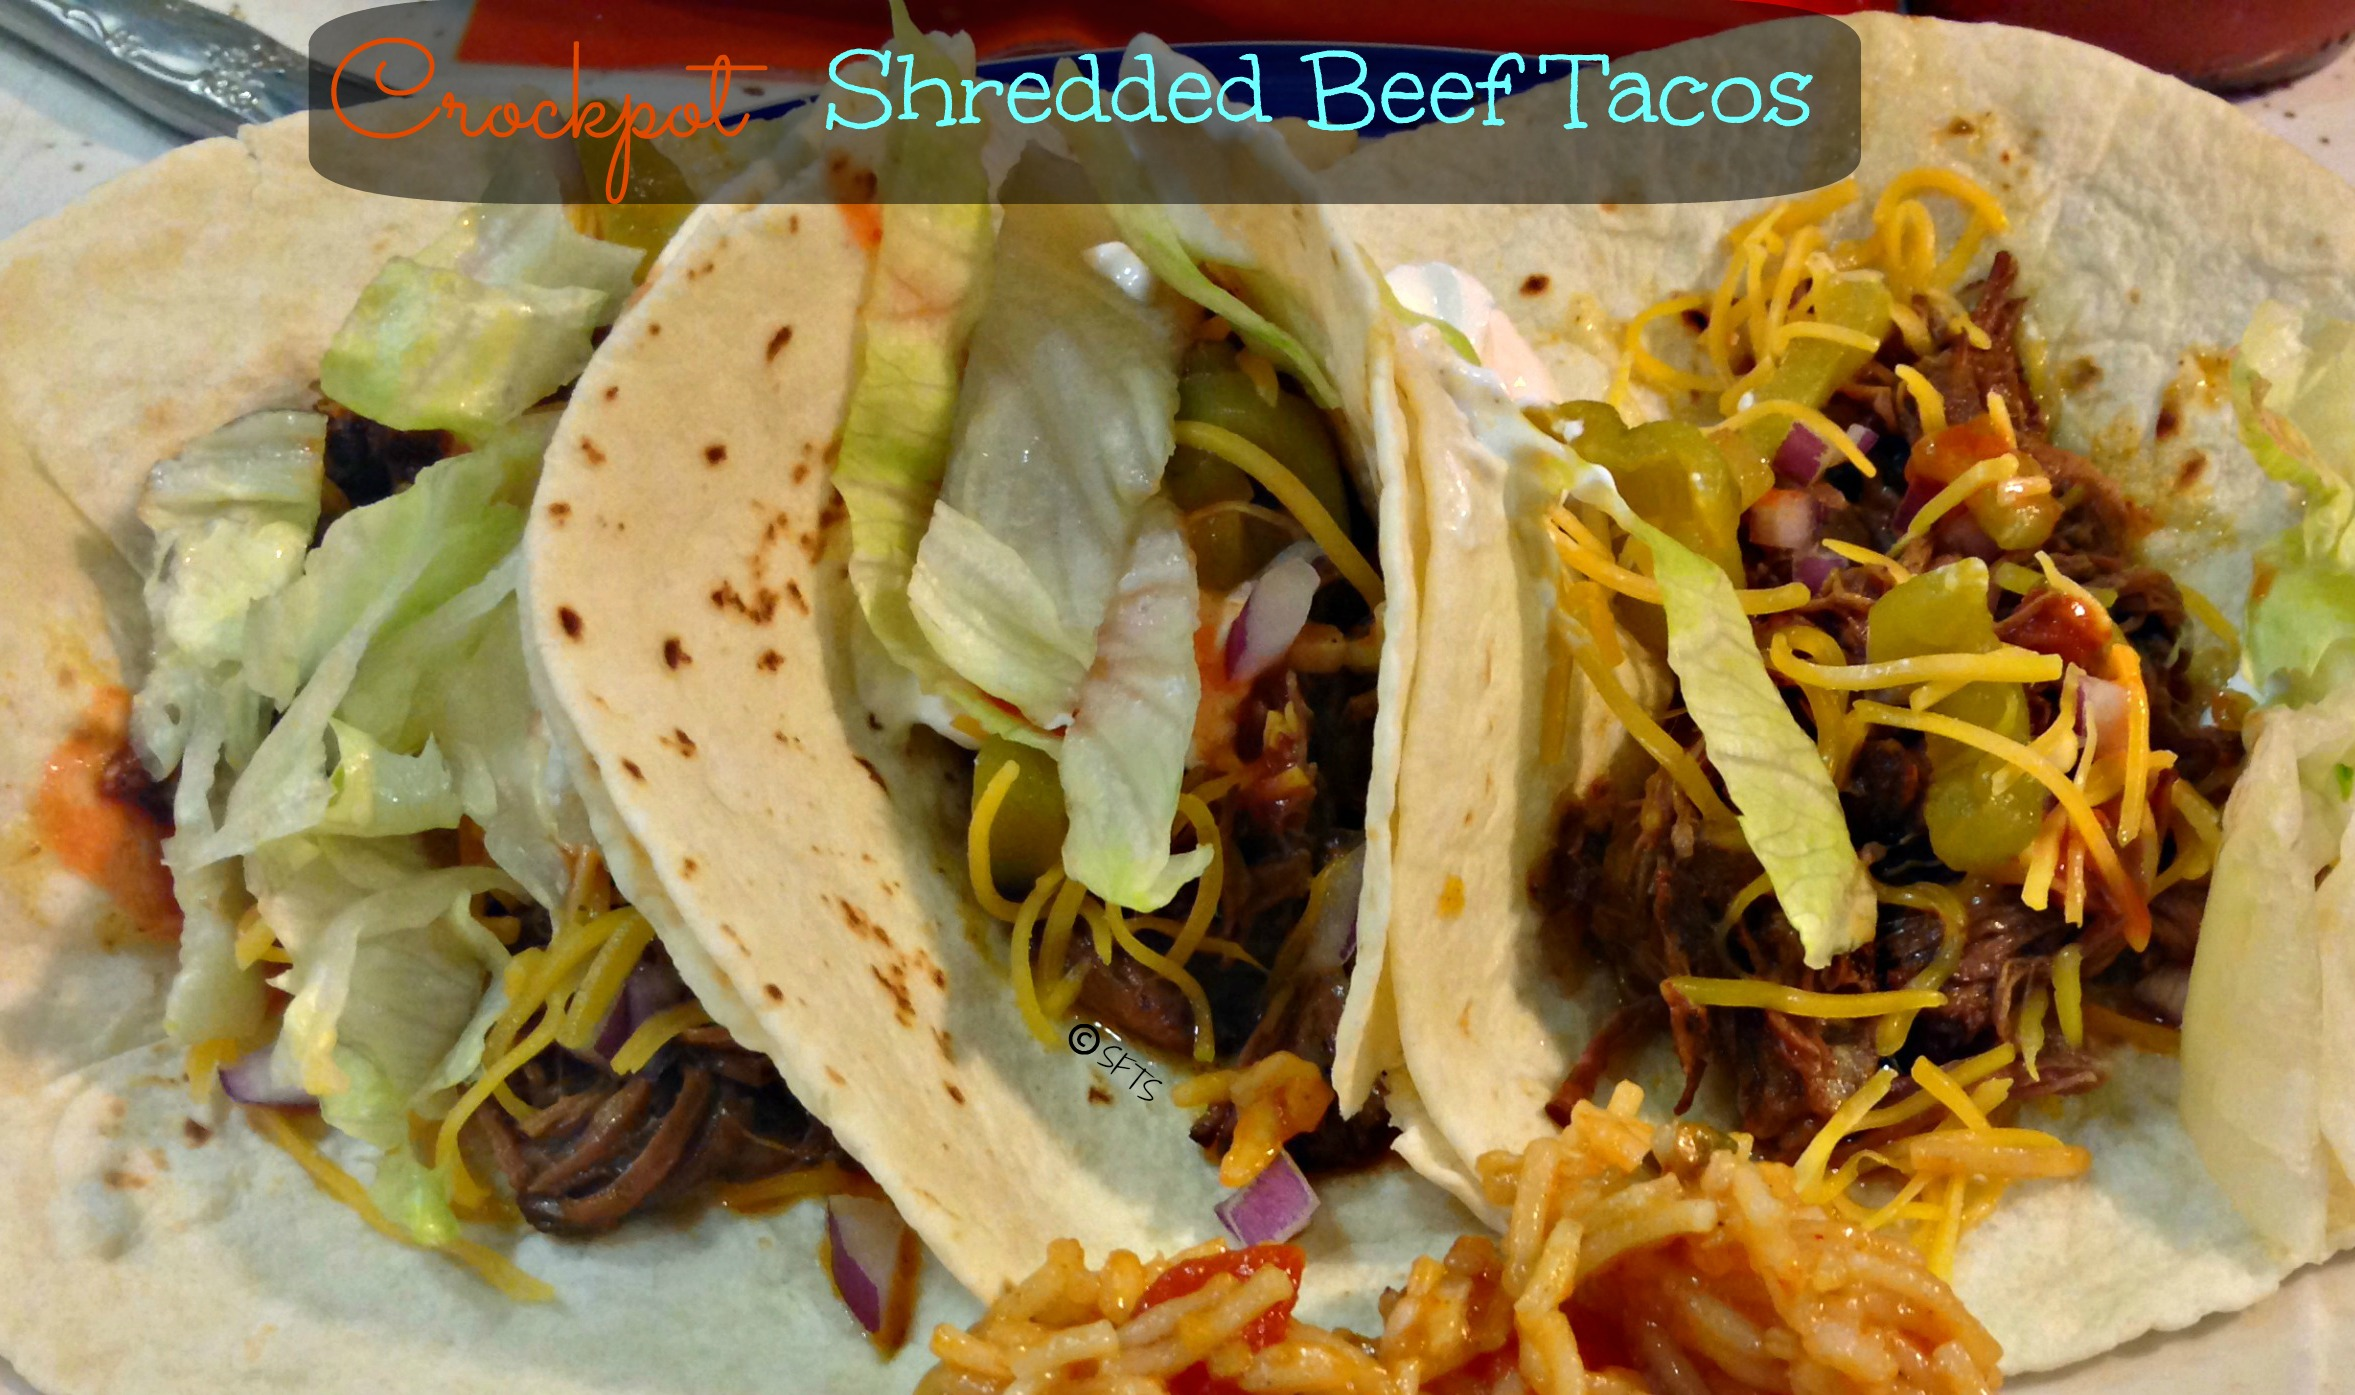 Crockpot Shredded Beef Tacos (from Gimme Some Oven )